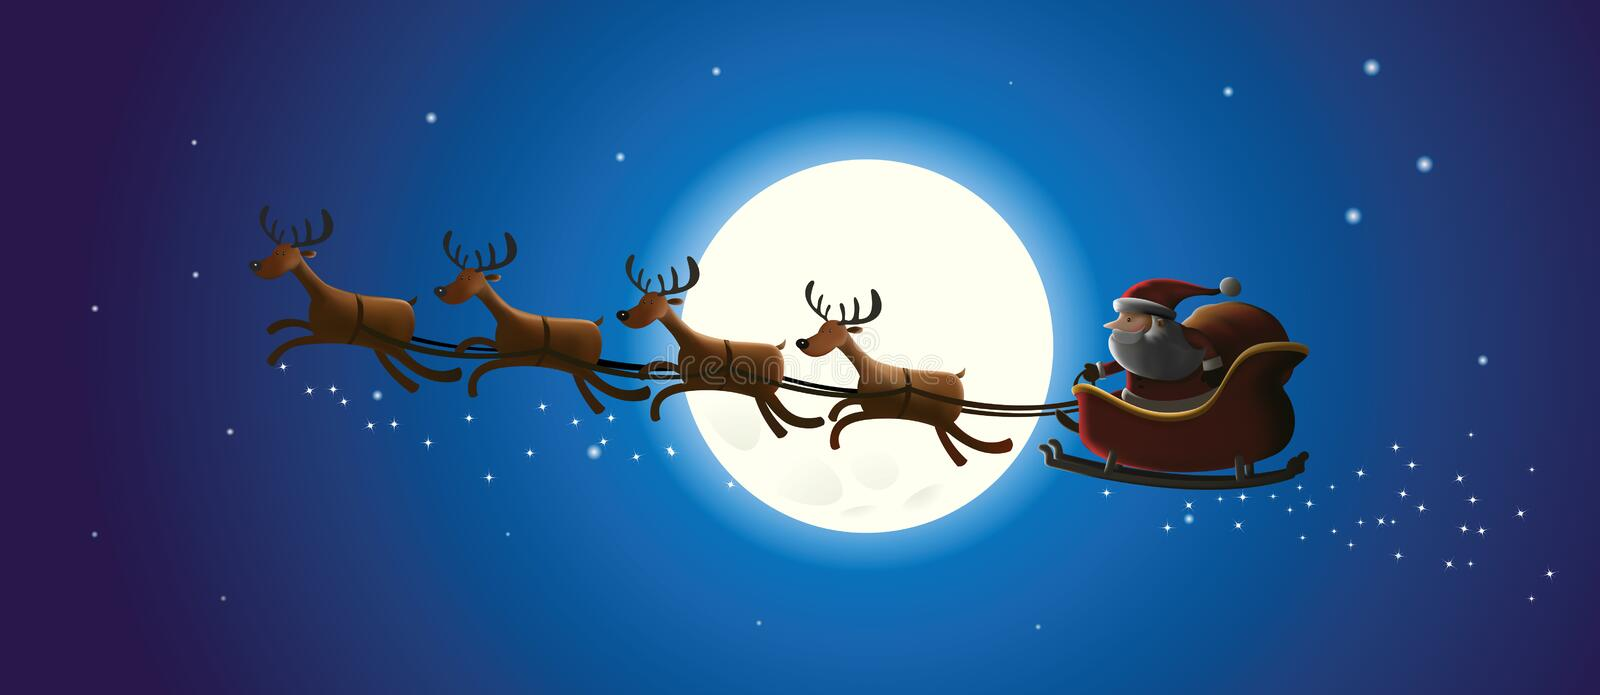 Santa and Christmas Reindeer royalty free stock images